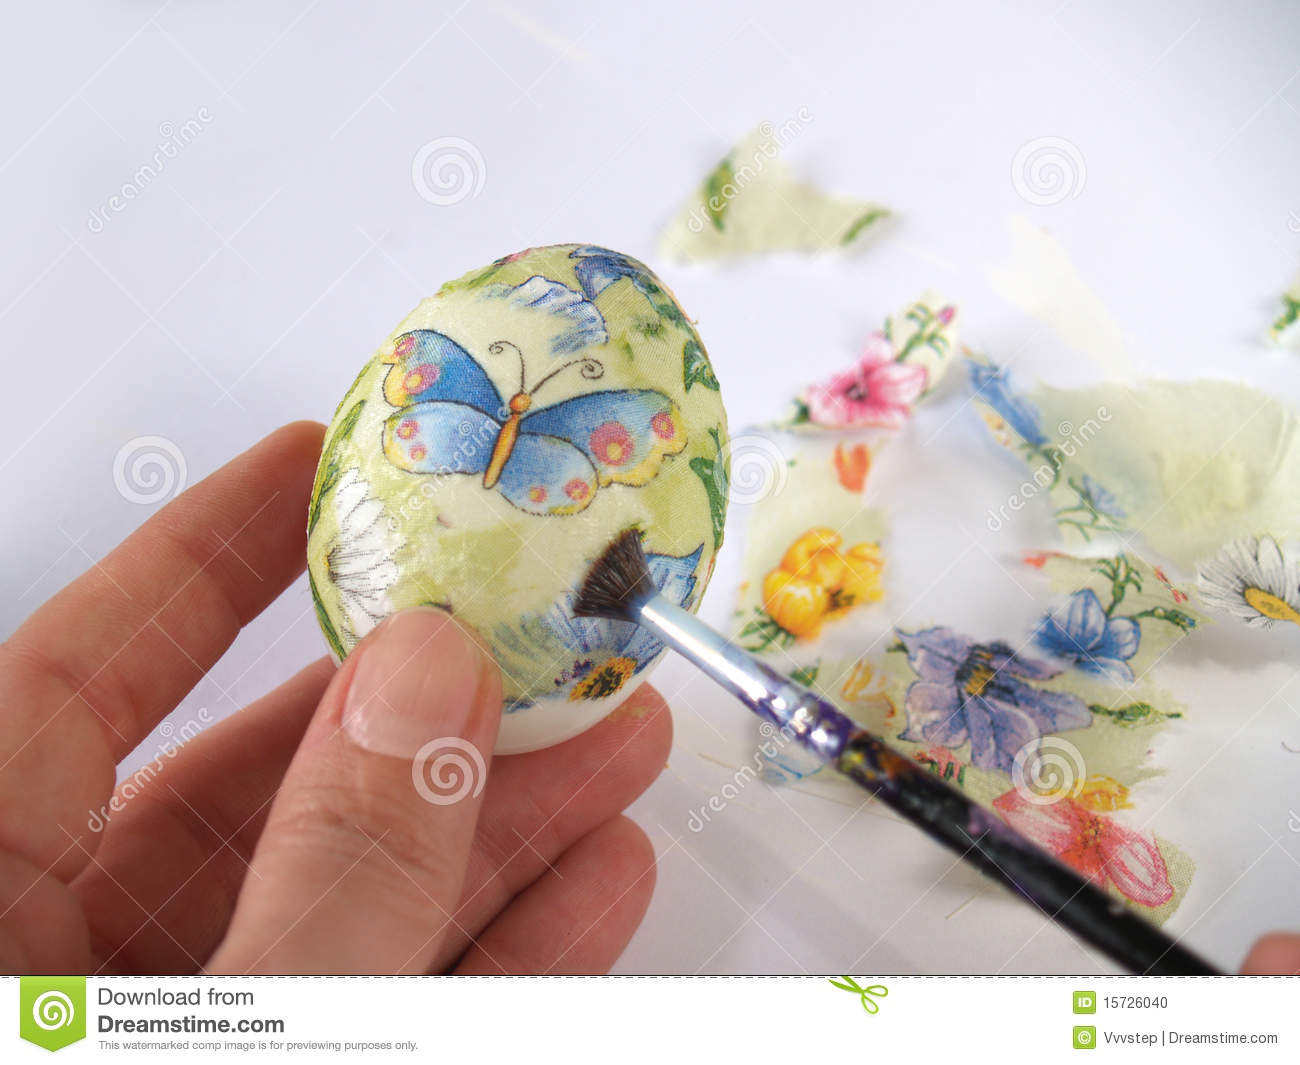 Close up of holding and painting Easter egg with decoupage technique.